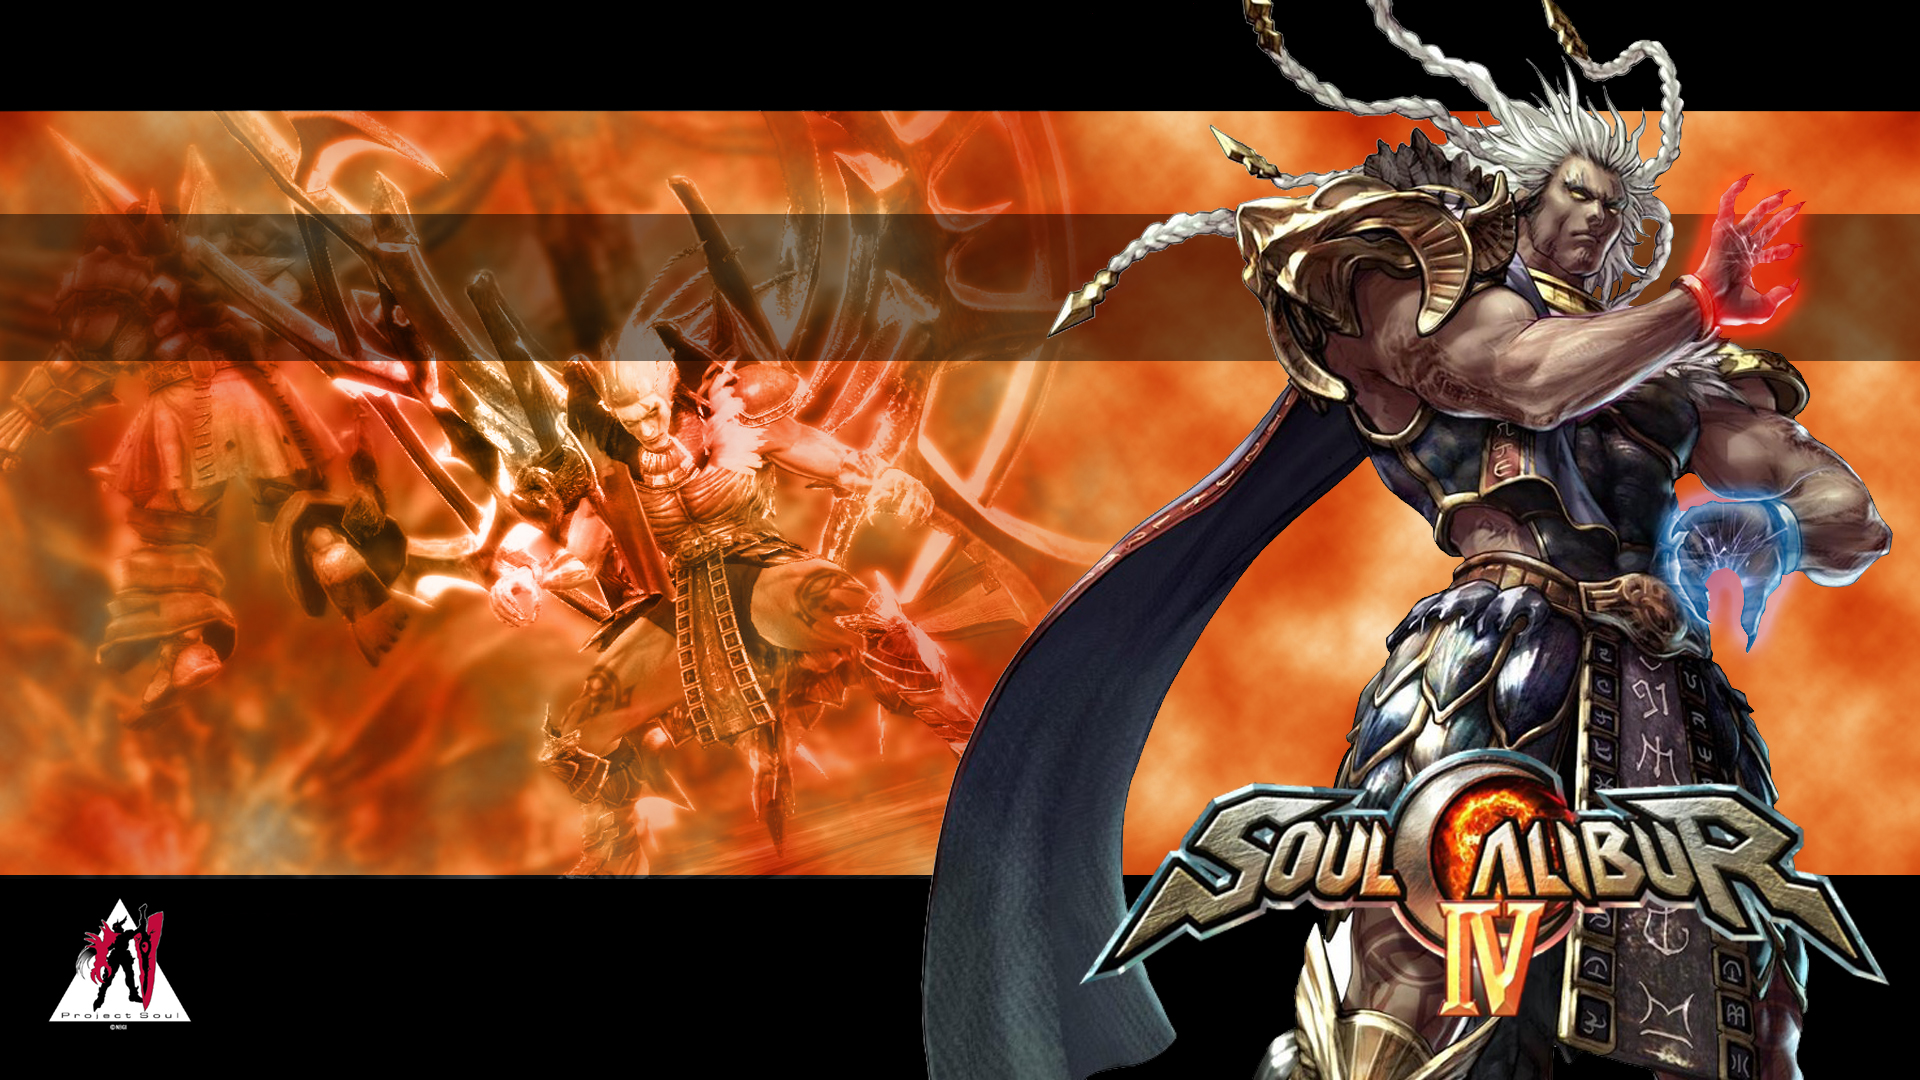 Soul Calibur Algol Wallpapers